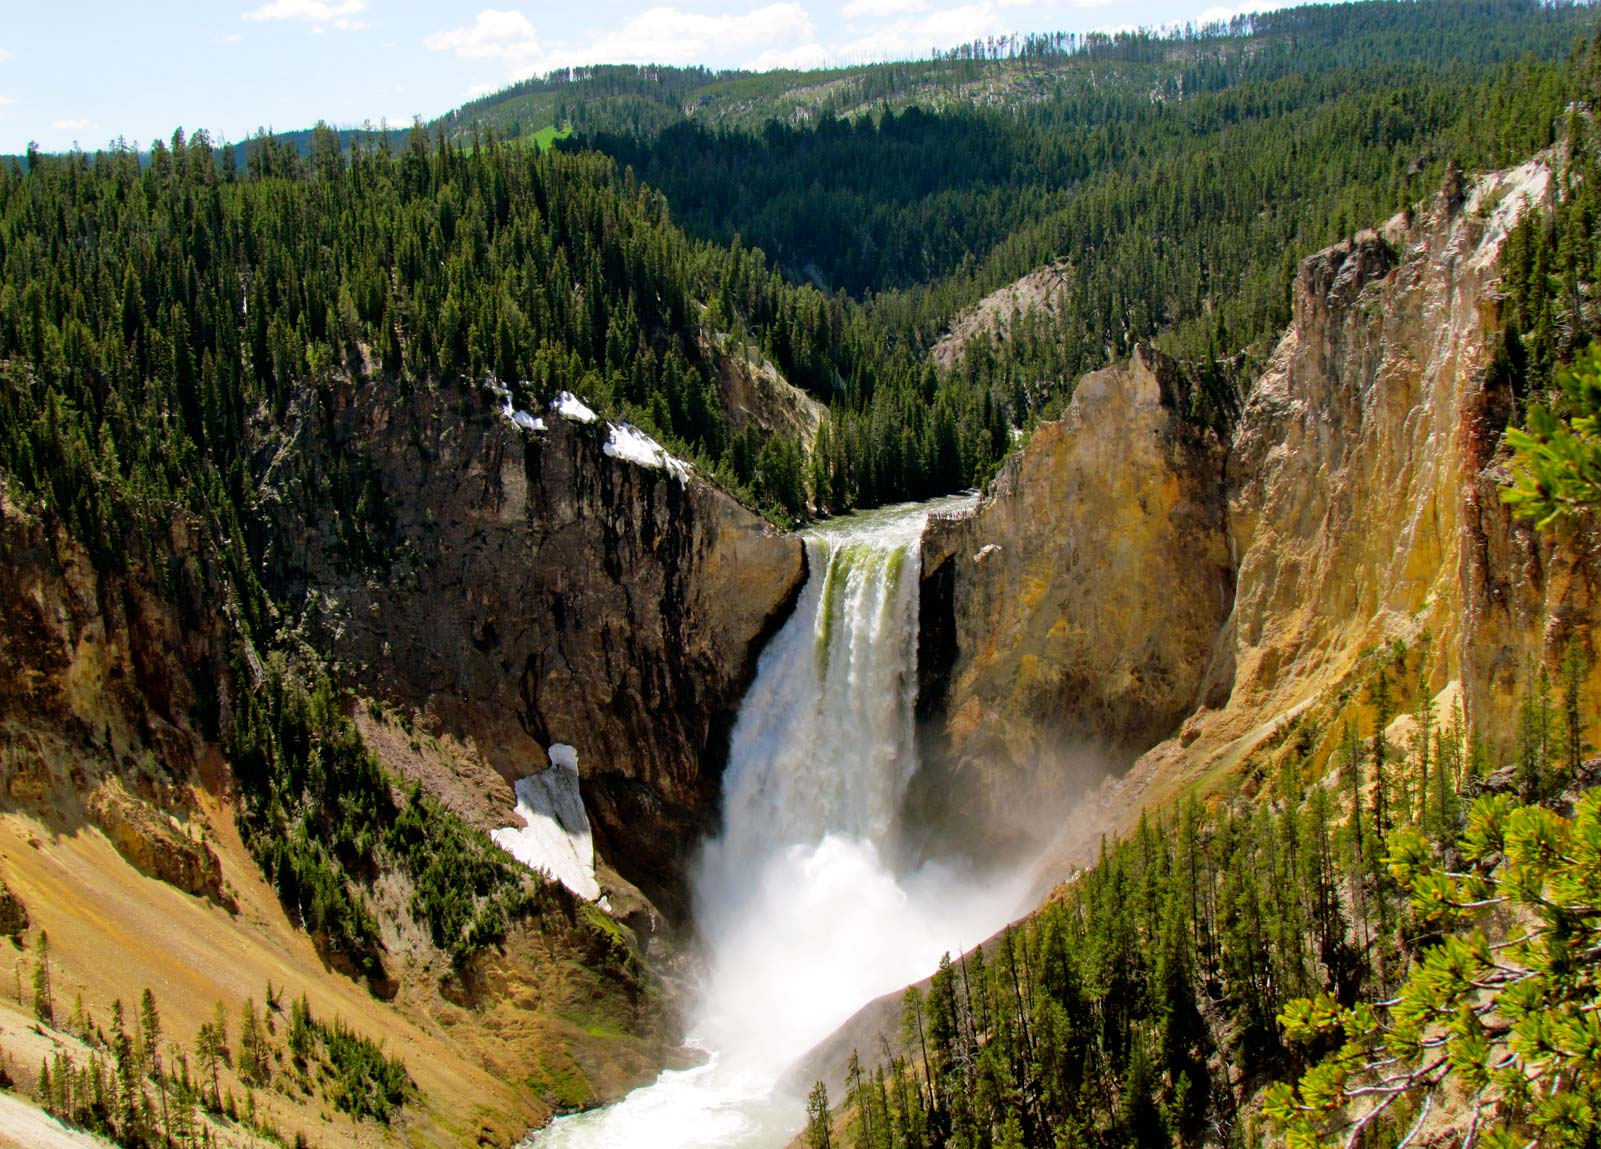 yellowstone campgrounds - camping in yellowstone national park